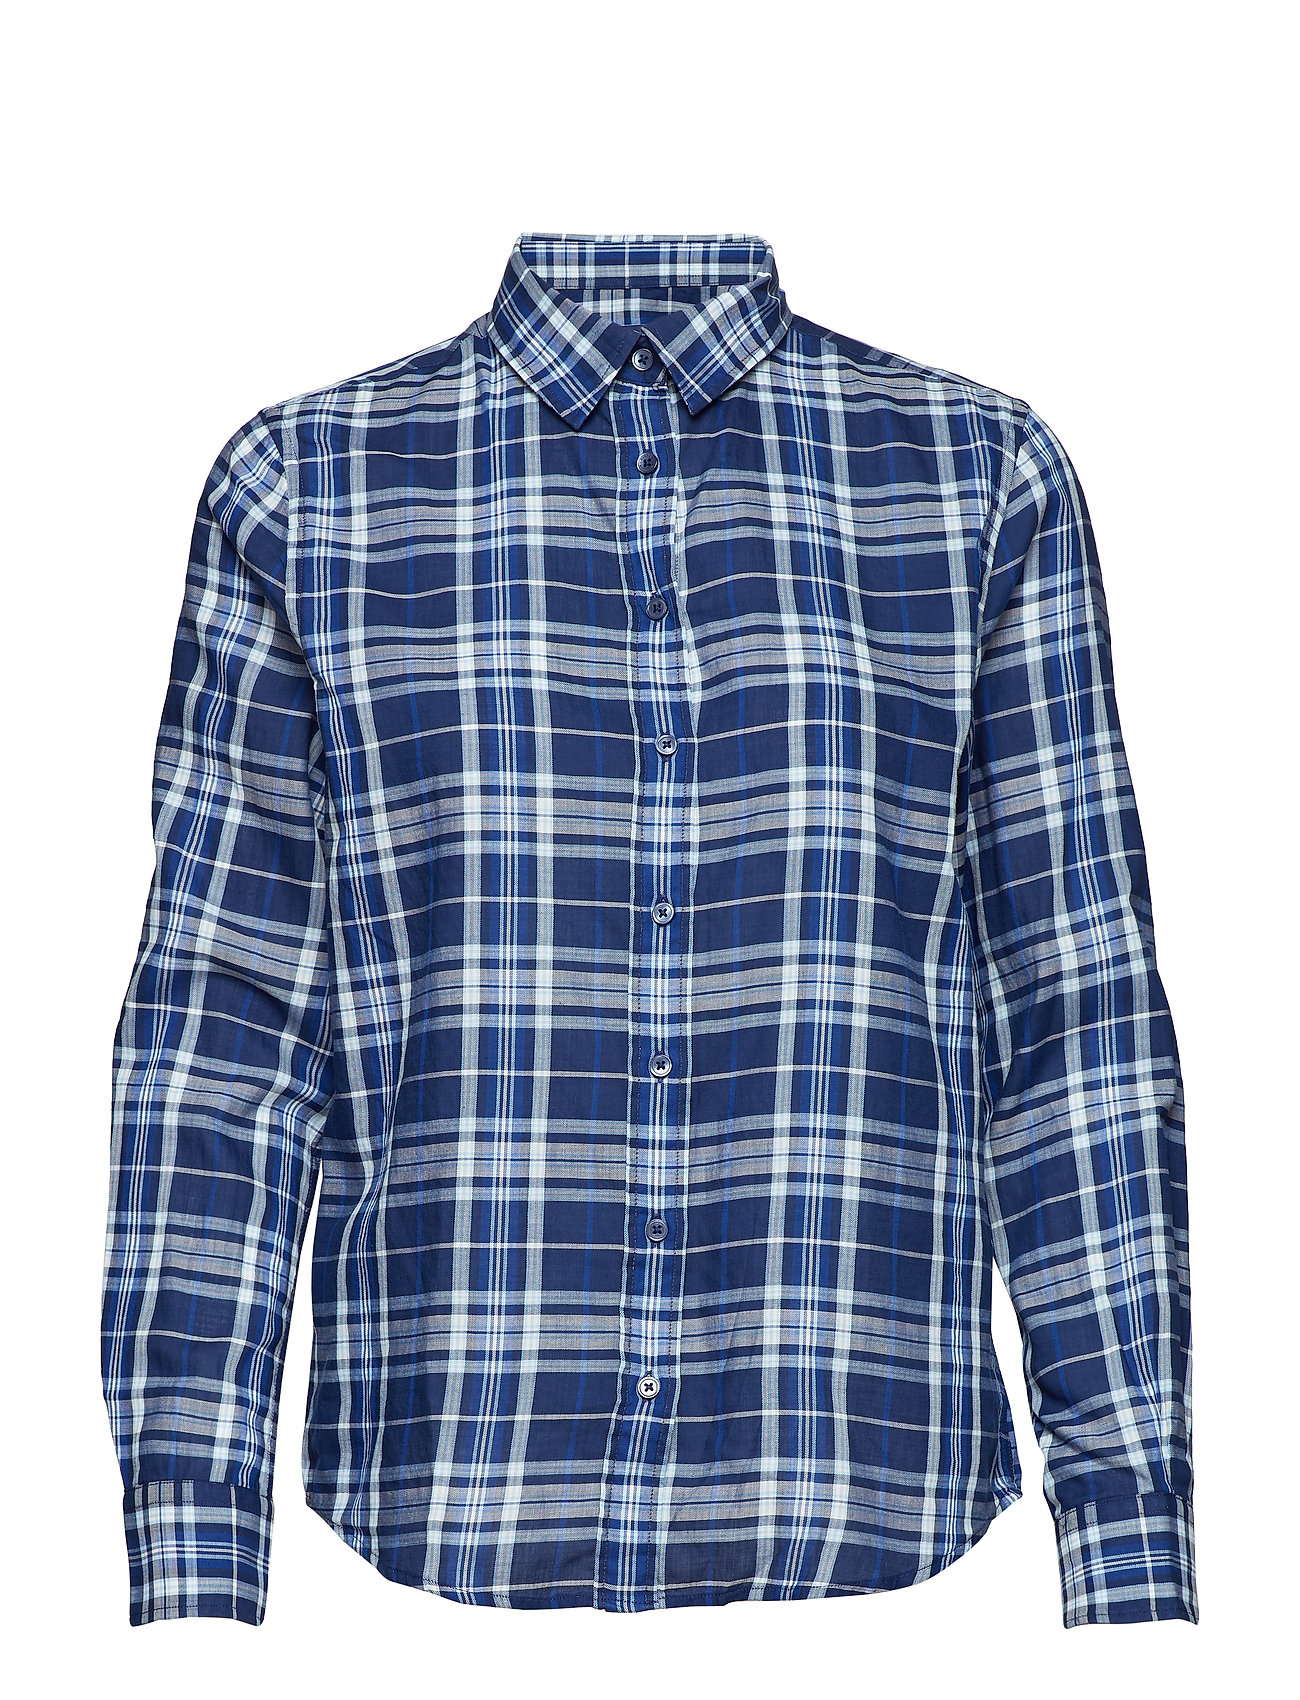 Gant O1. FINE TWILL SHIRT - PERSIAN BLUE